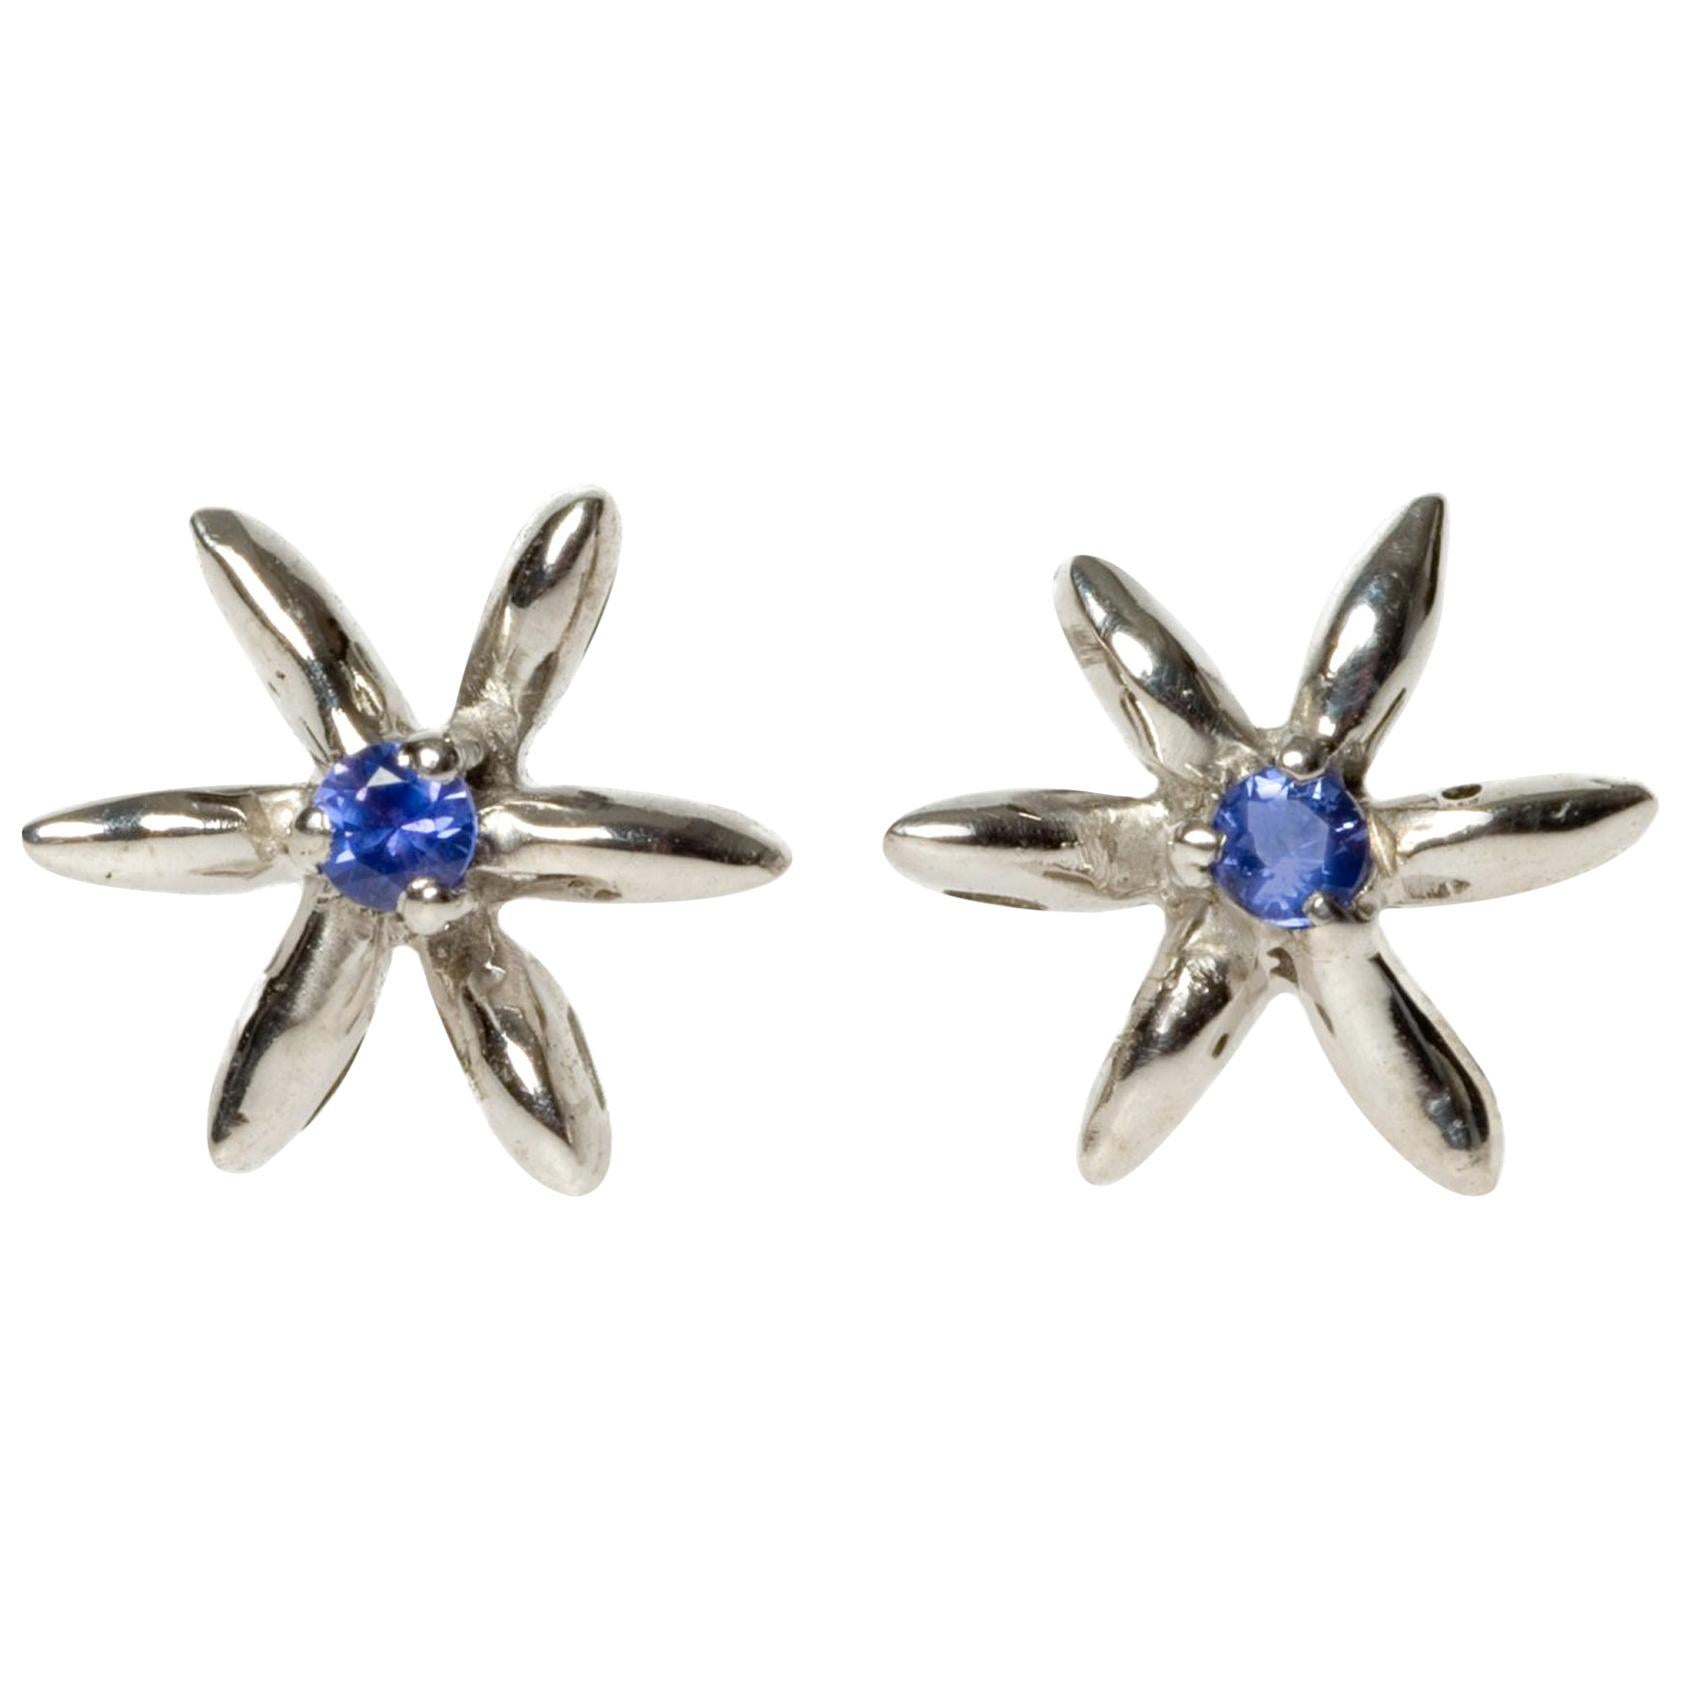 Sapphire Stud Earrings in 18 Karat White Gold Made in Italy Can Be Custom Made